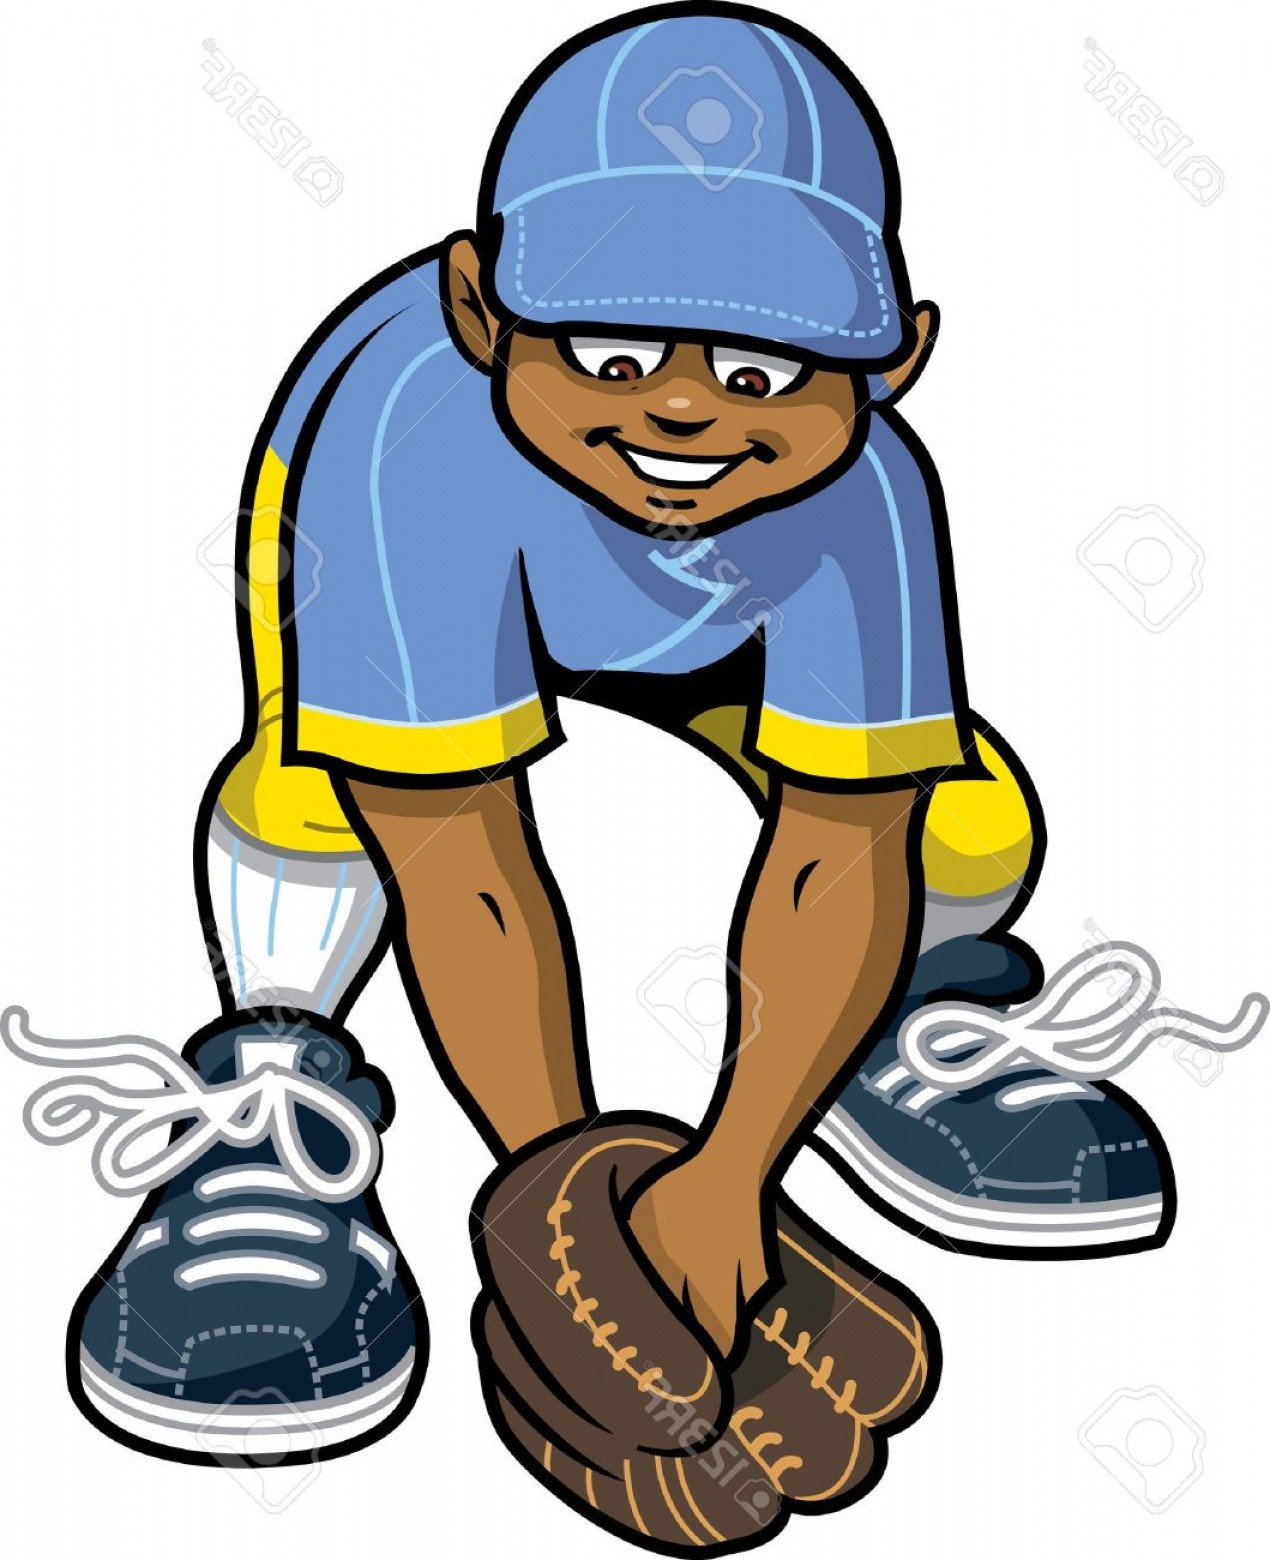 Little League Baseball Vector Logo No Text: Photohappy Baseball Softball Little League Outfielder Getting Ready To Catch A Ground Ball